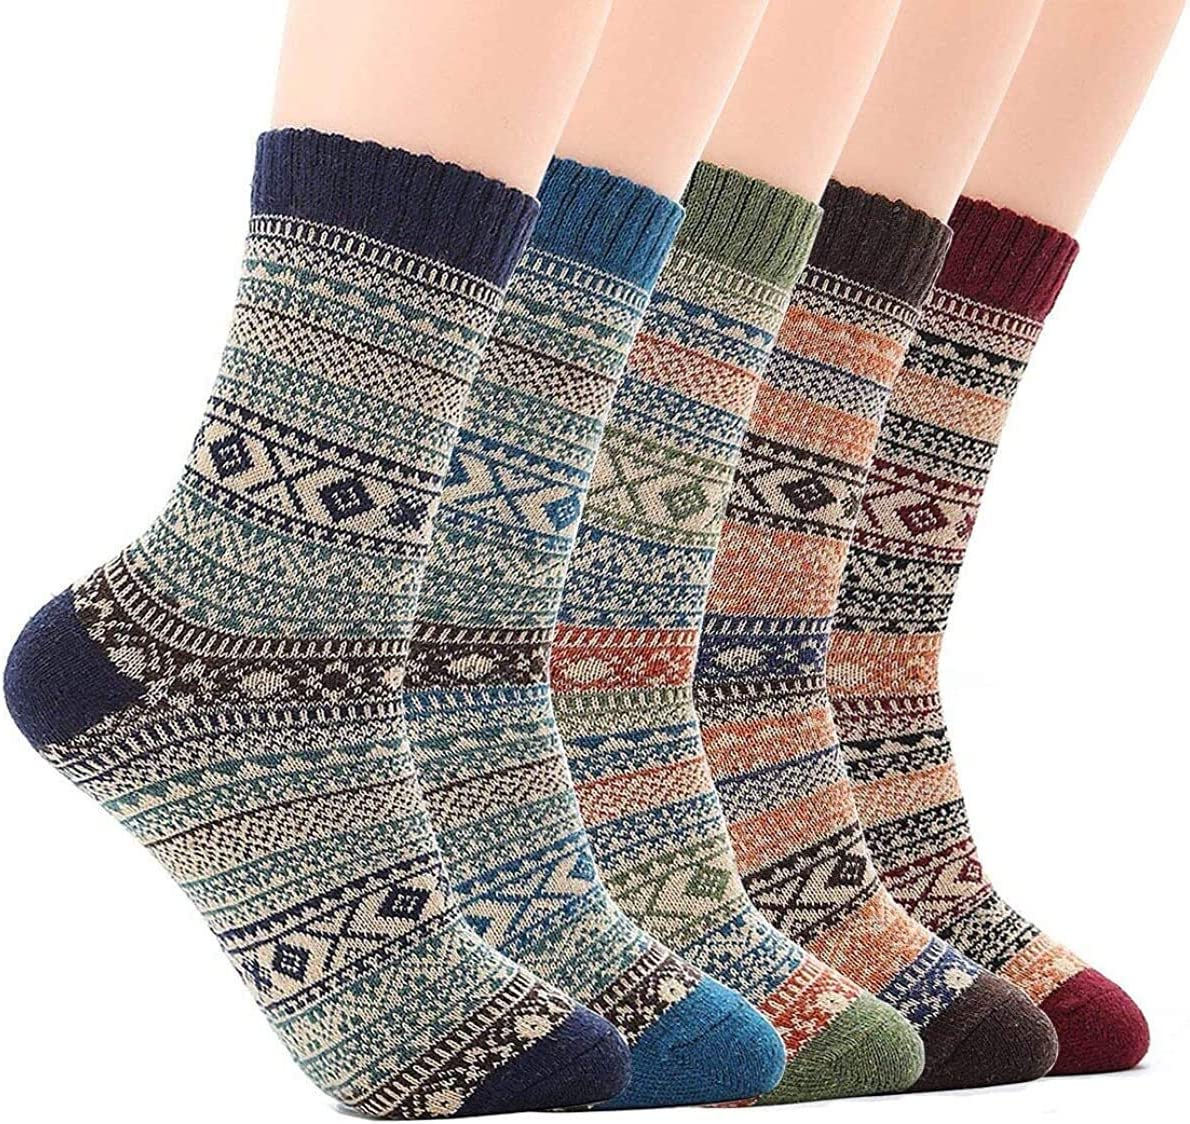 RENFEIYUAN safety 5 Pairs Mens Thermal Socks Vintage Popular brand in the world Casual Thick